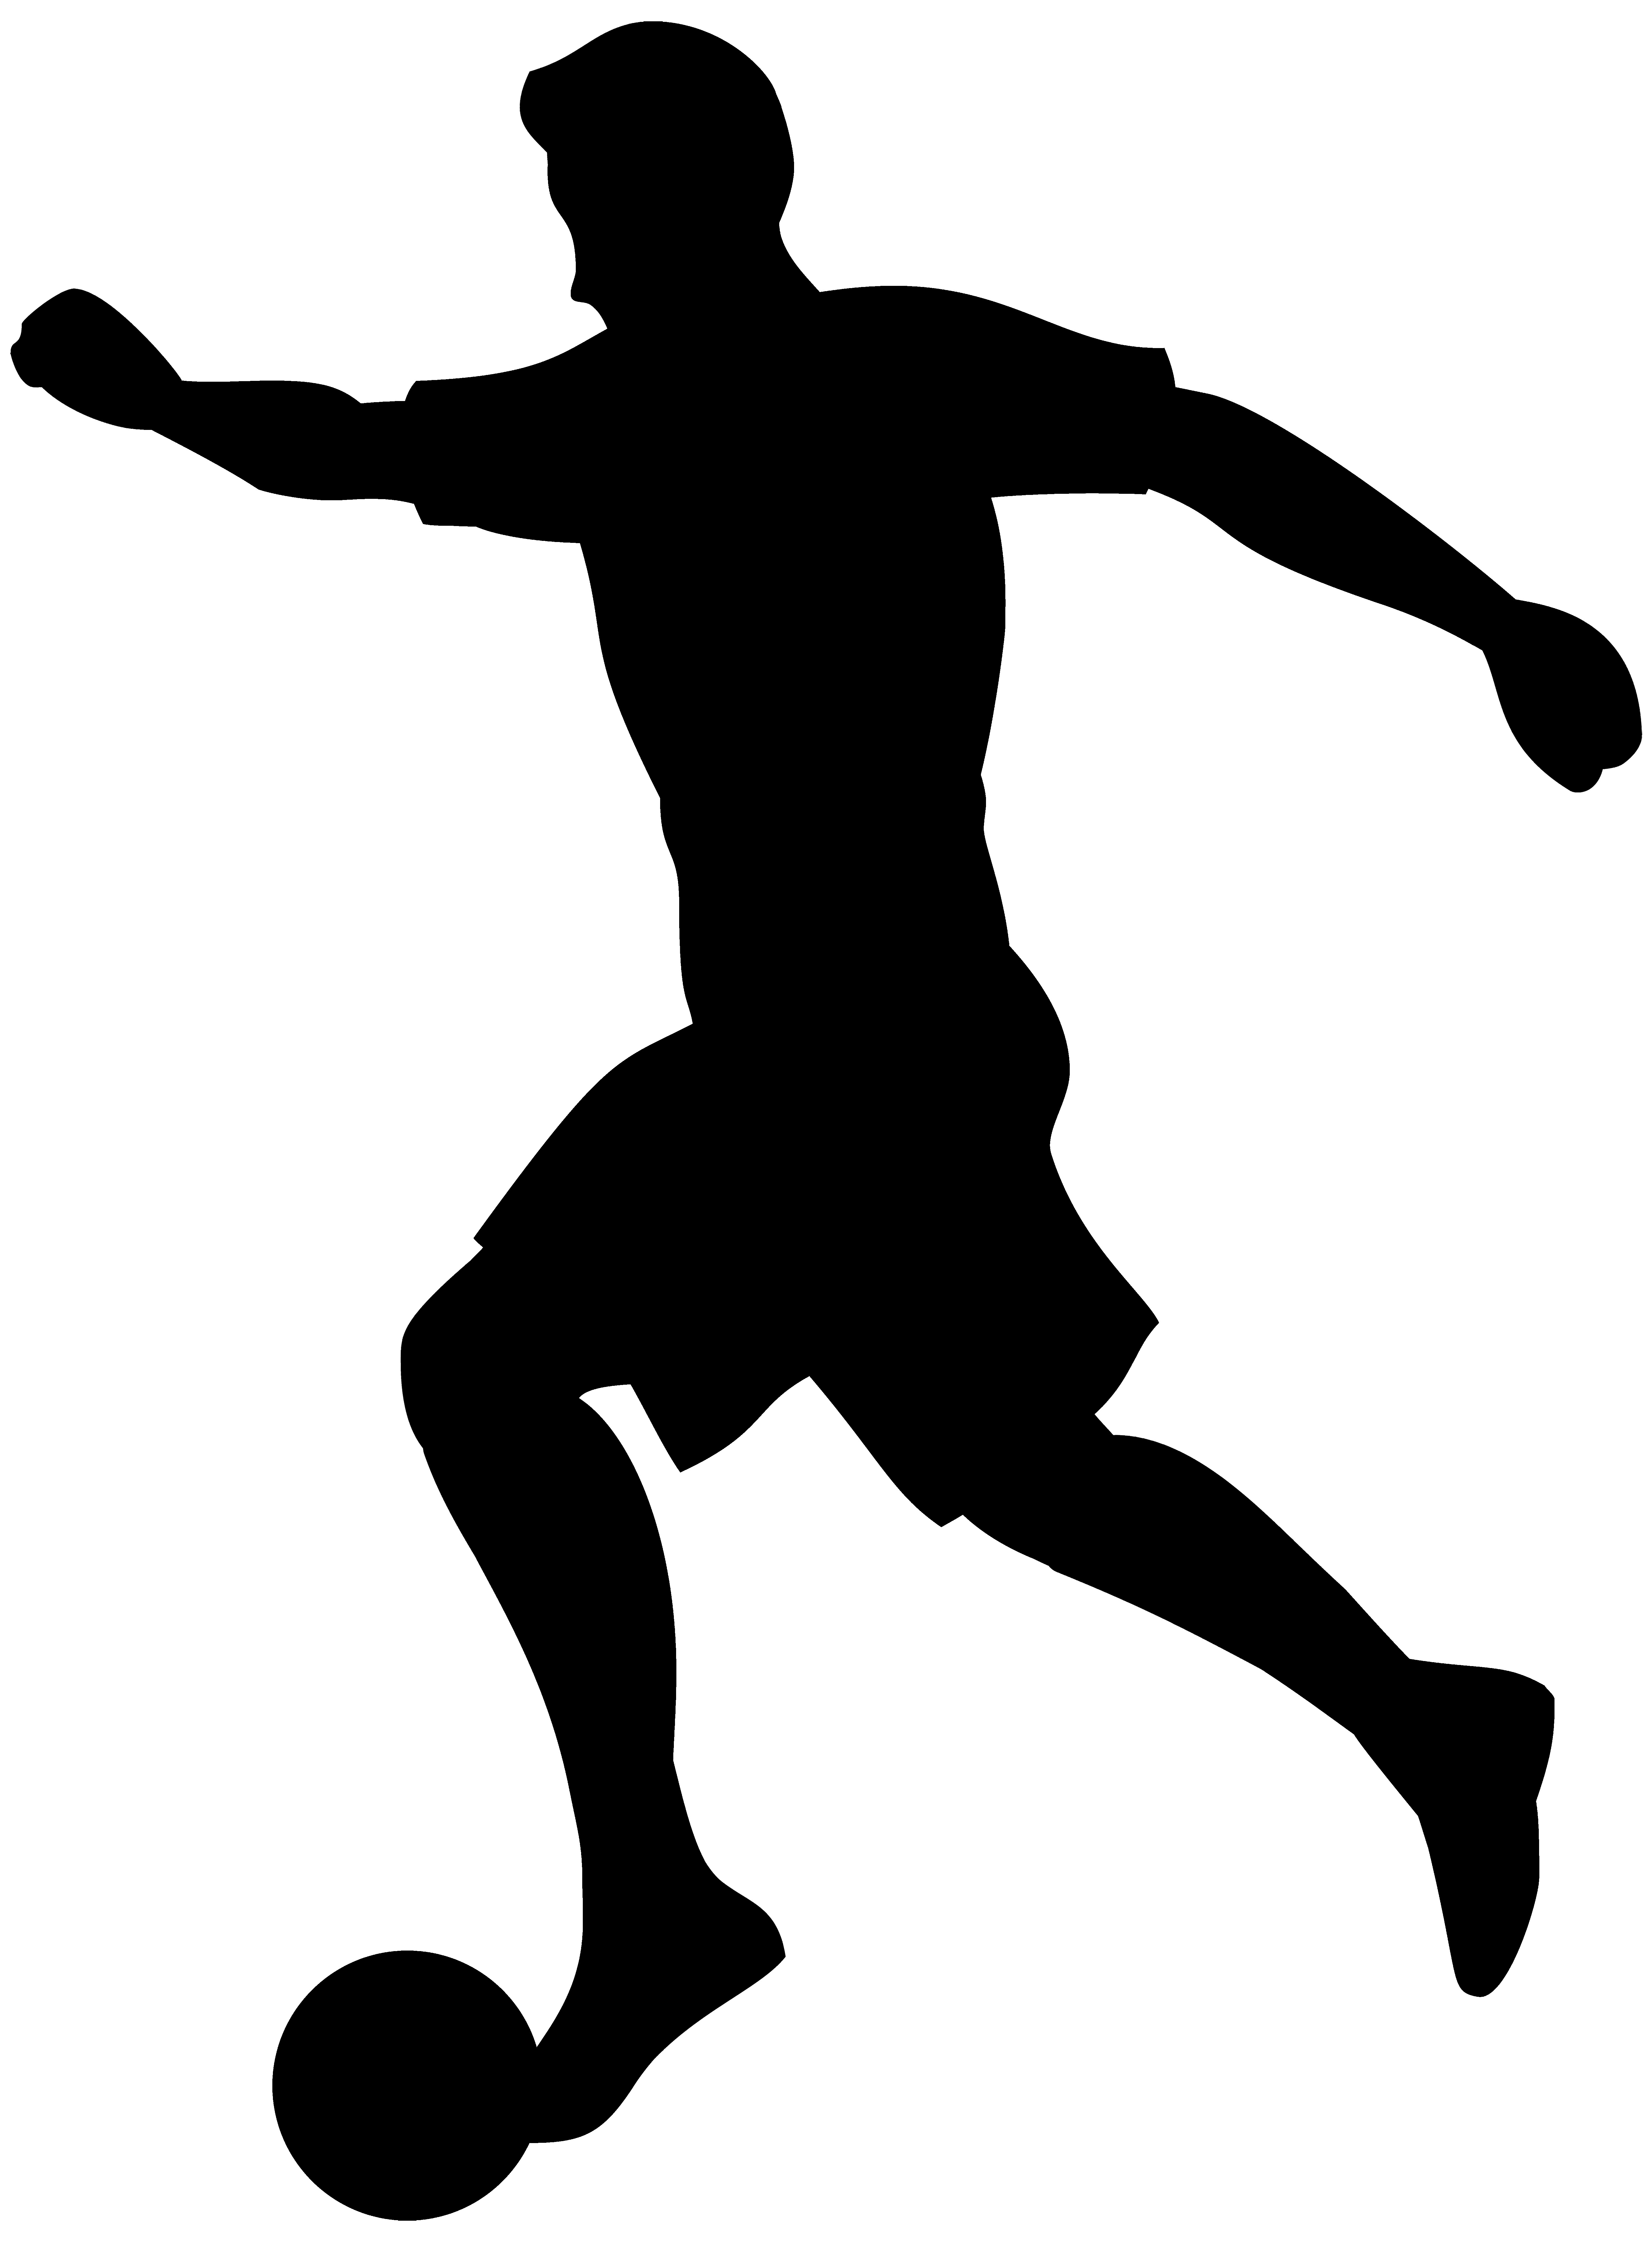 5896x8000 American Football Player Silhouette Png Last Dance